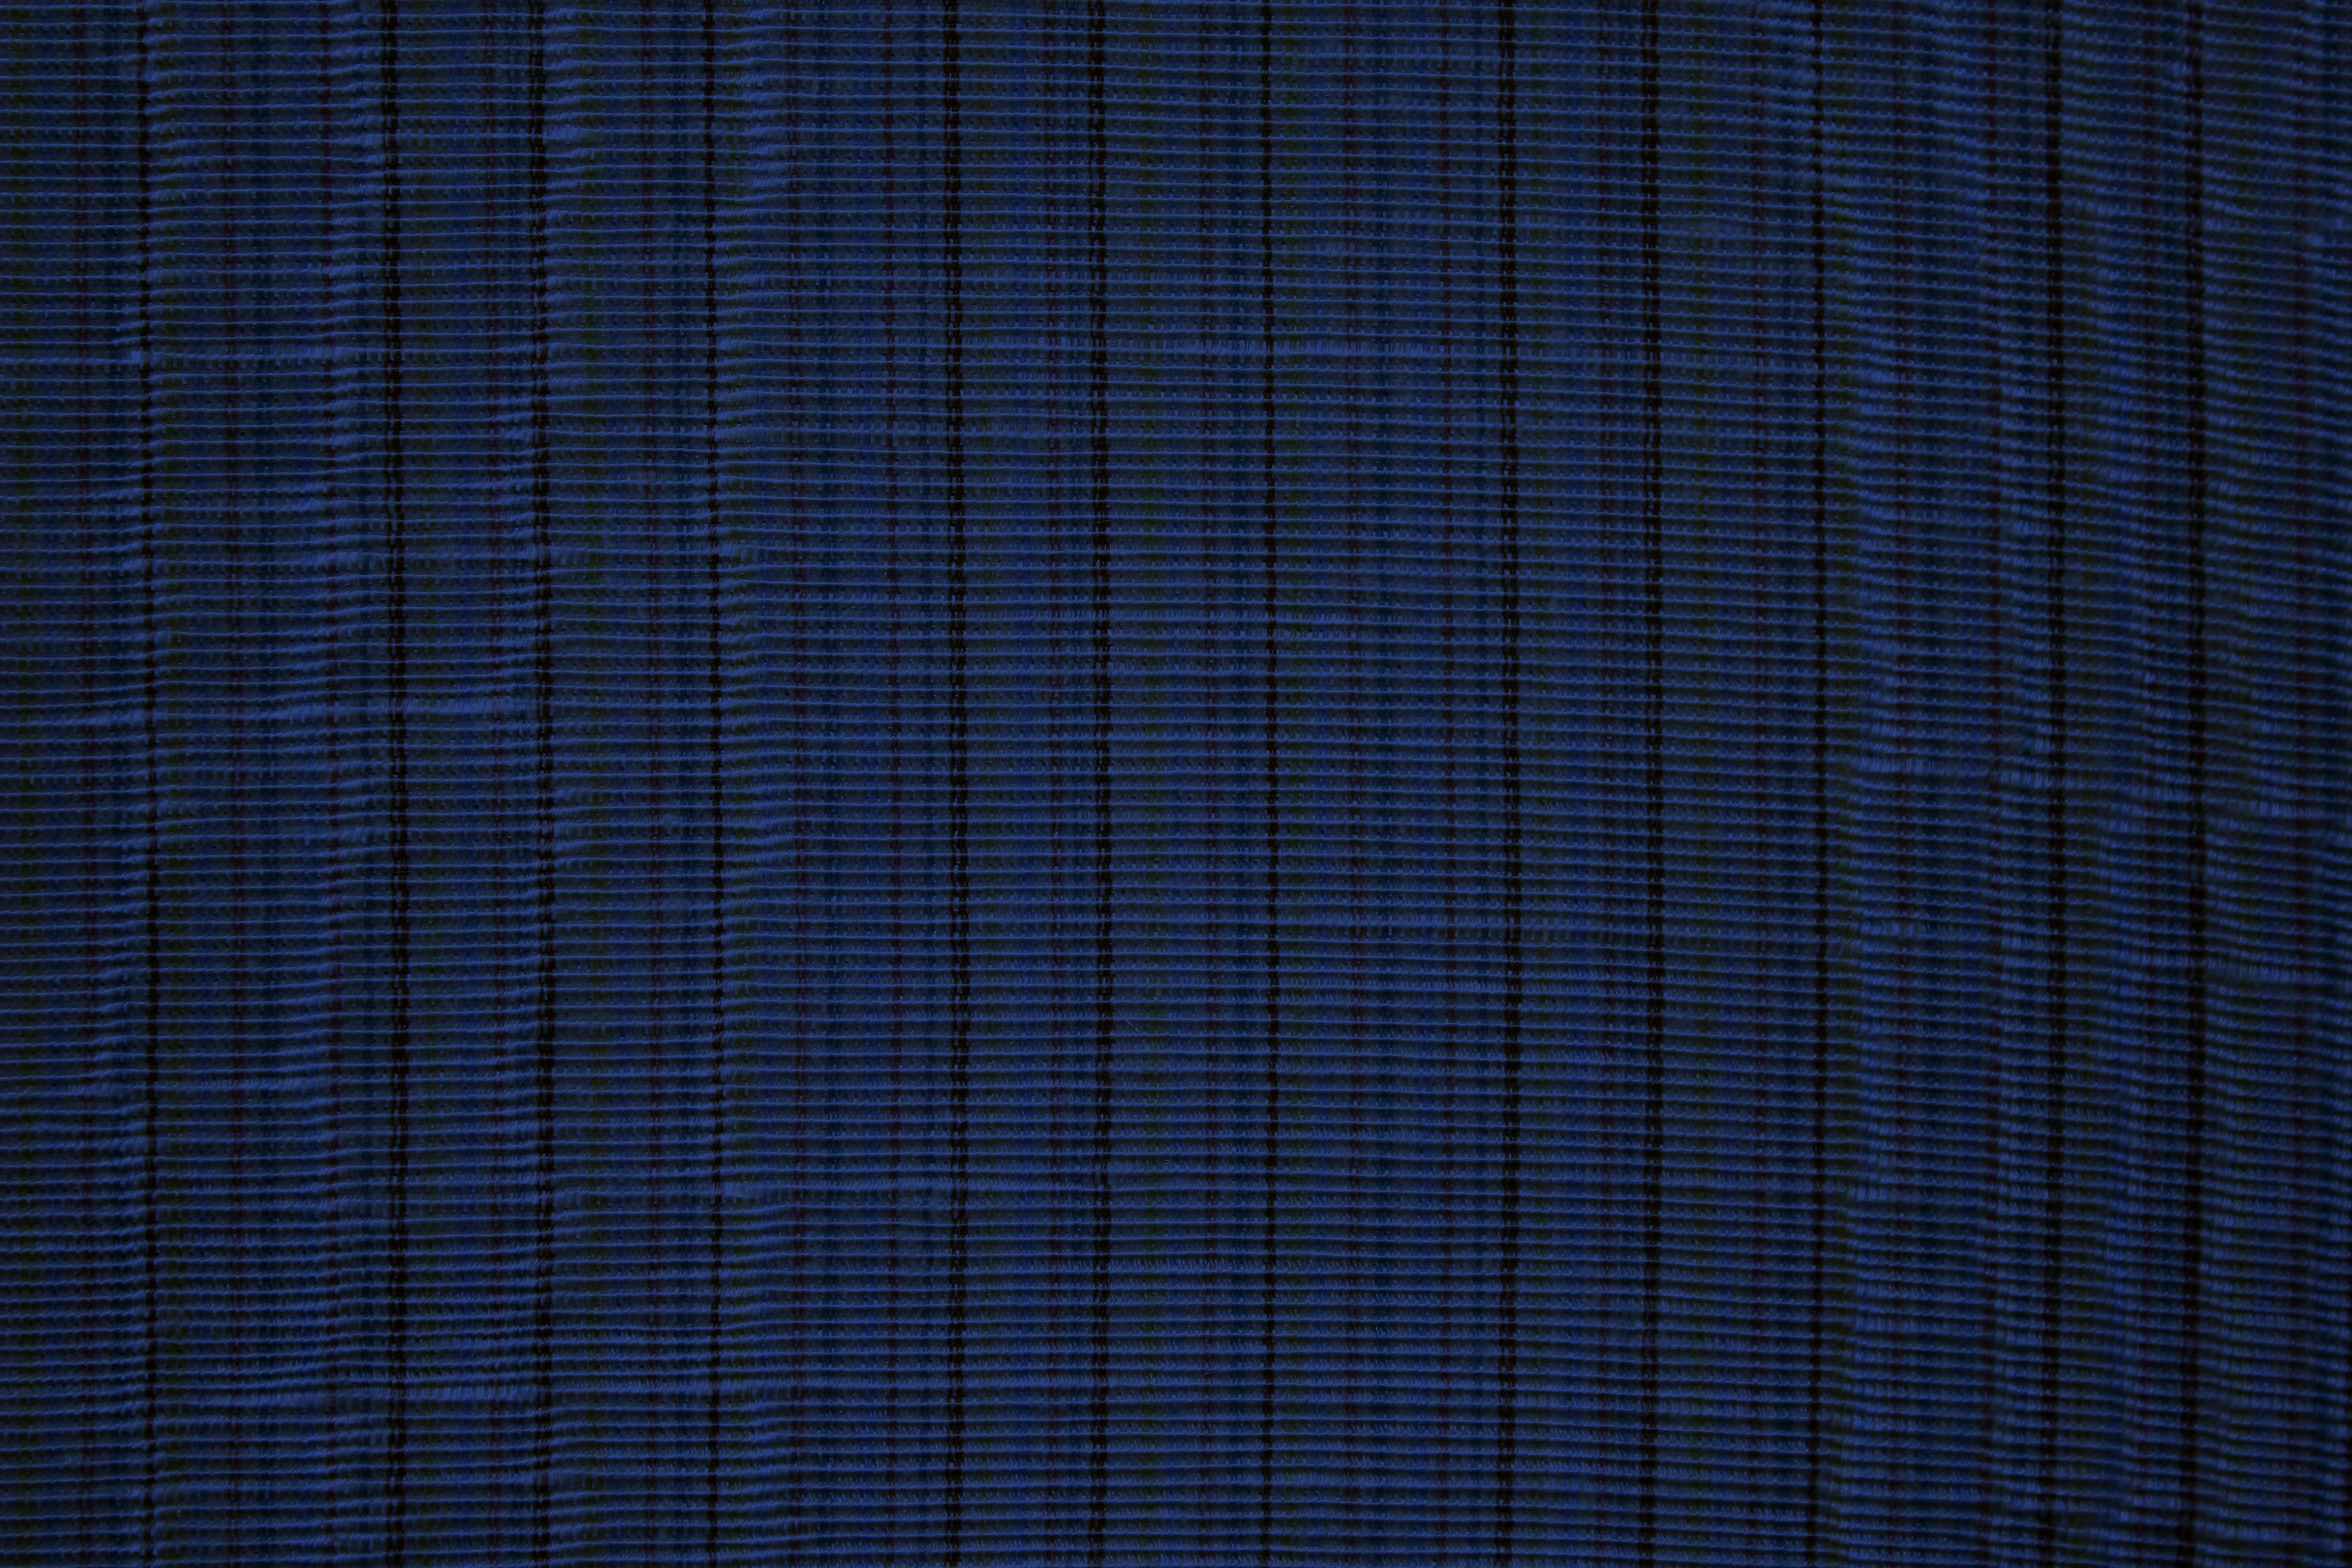 Navy blue wallpaper 7650 3888x2592 px for Navy blue wallpaper for walls